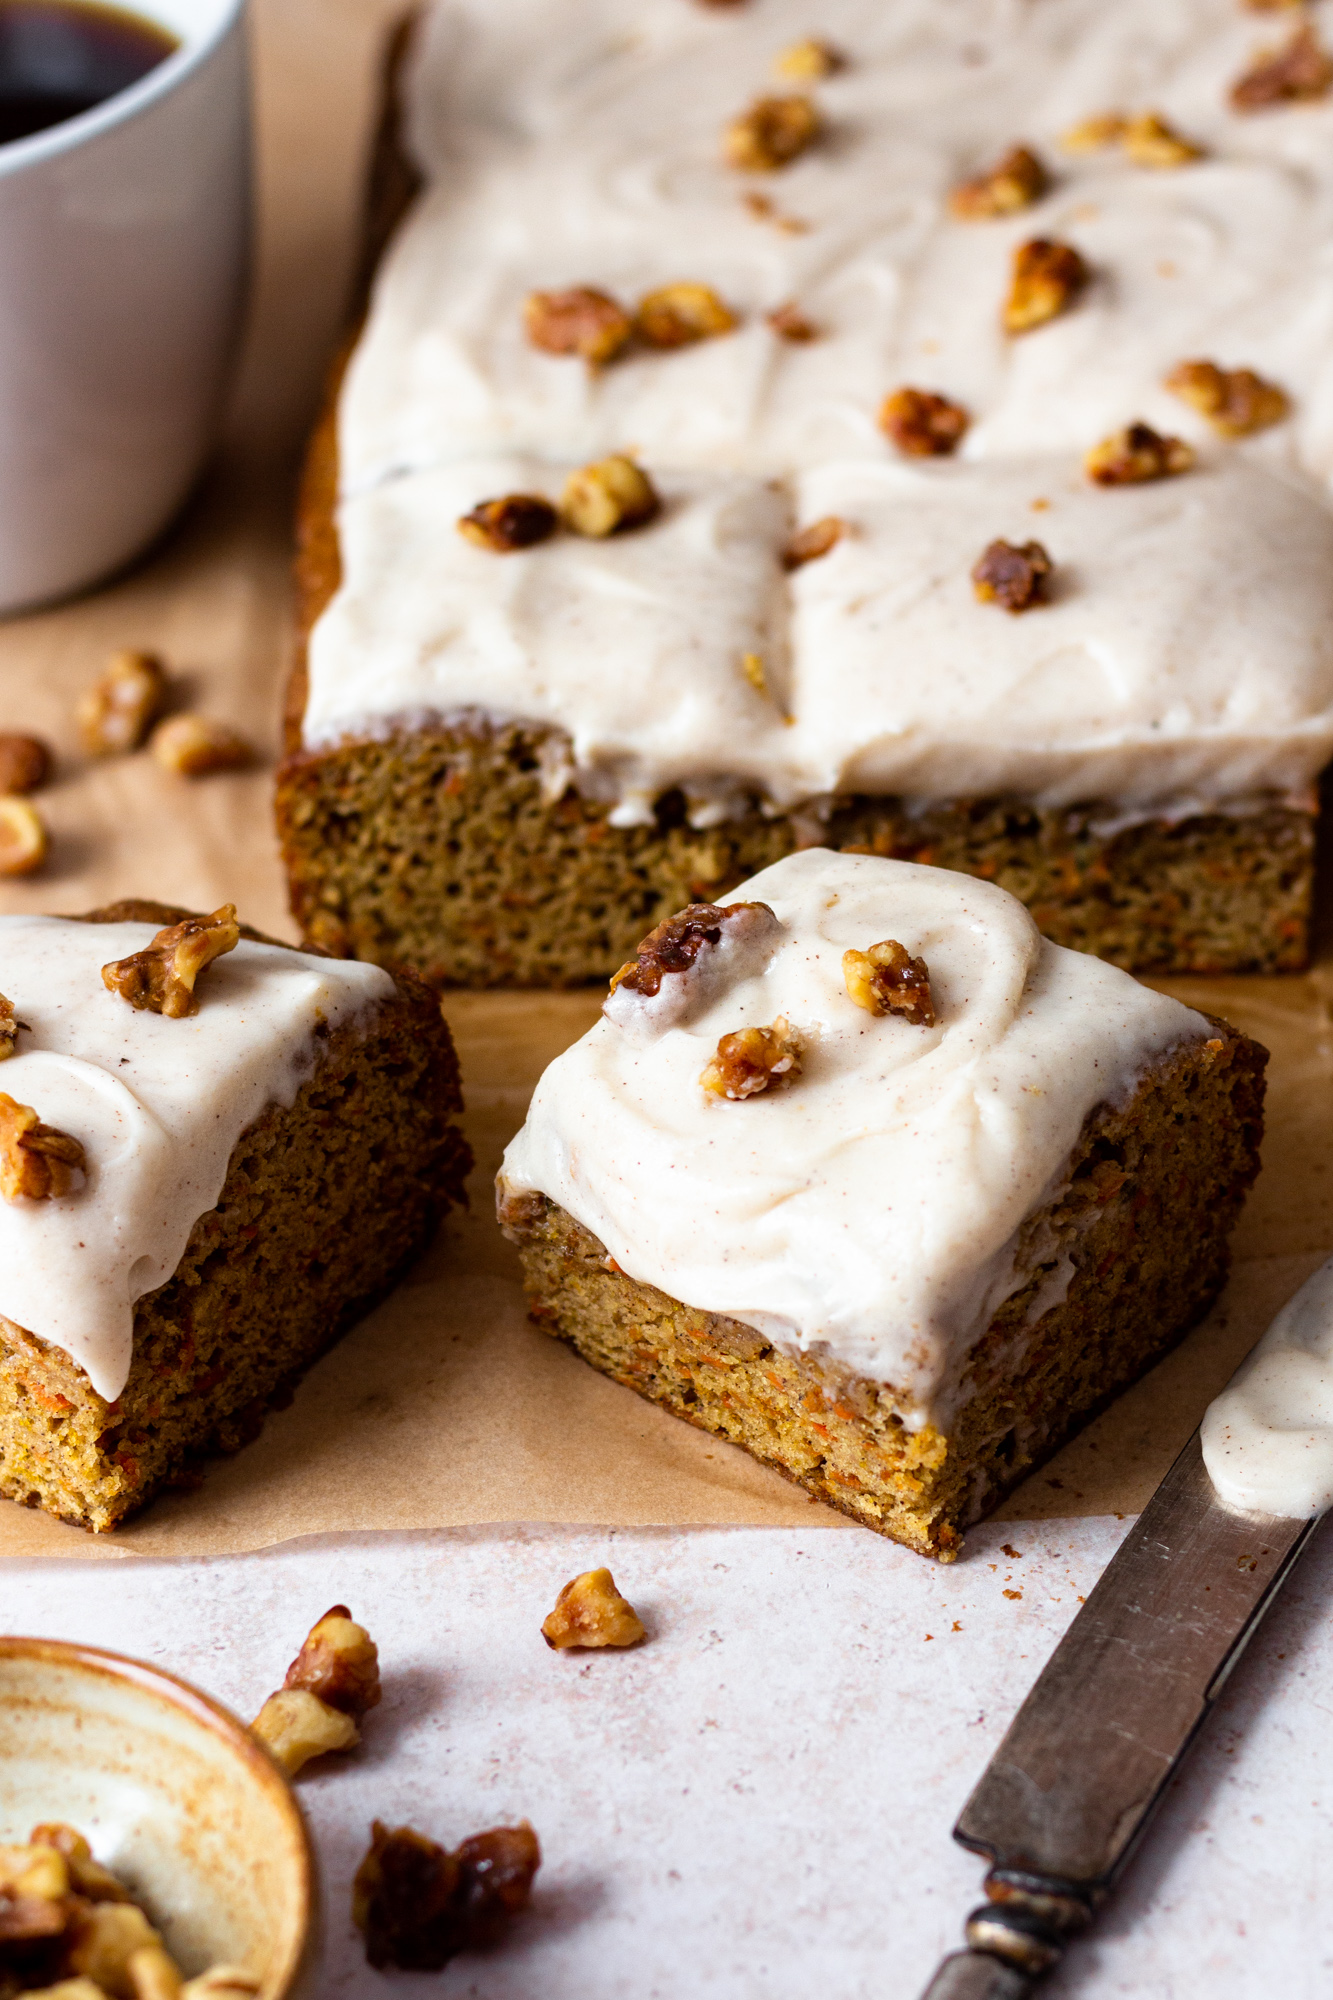 The BEST carrot cake that is perfectly spiced, has a moist crumb, and is topped with velvety smooth chai spiced cream cheese frosting that is incredibly delicious and takes this carrot cake to another level!! The cake is easy to make with a few additional chai spices and can be prepared ahead of time. It's sure to impress!